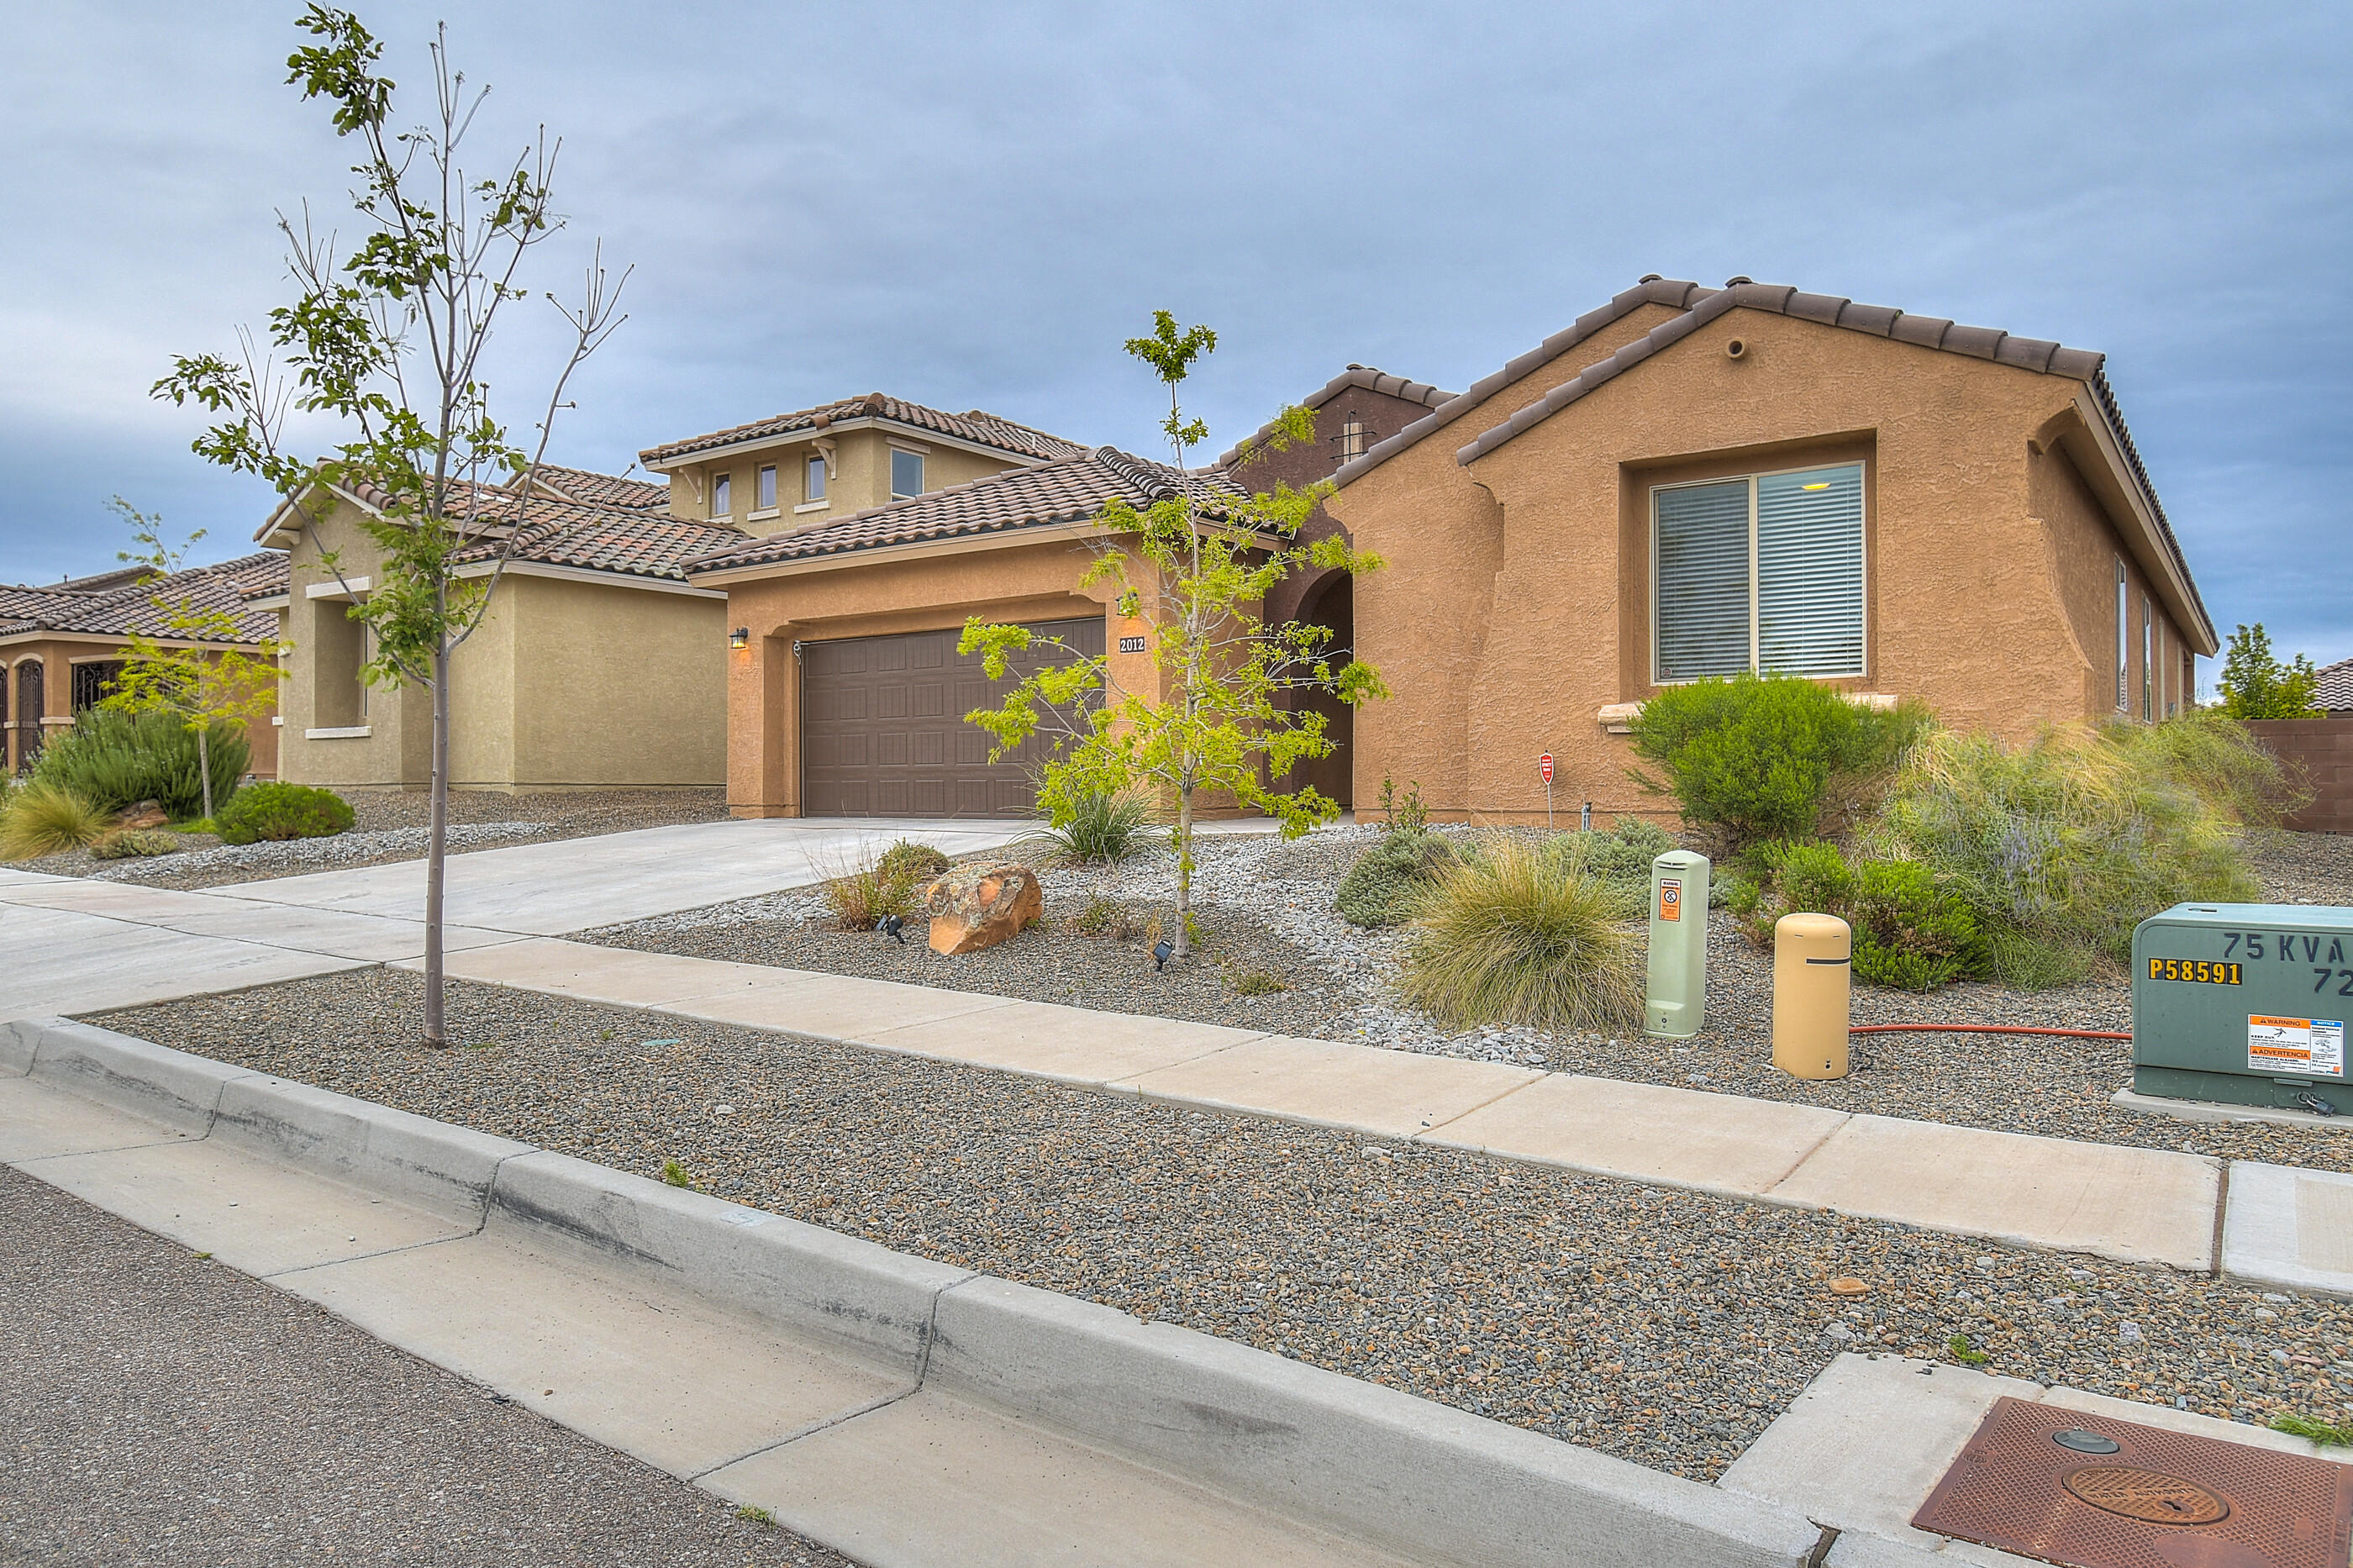 2012 ABO CANYON Drive NW Property Photo - Albuquerque, NM real estate listing